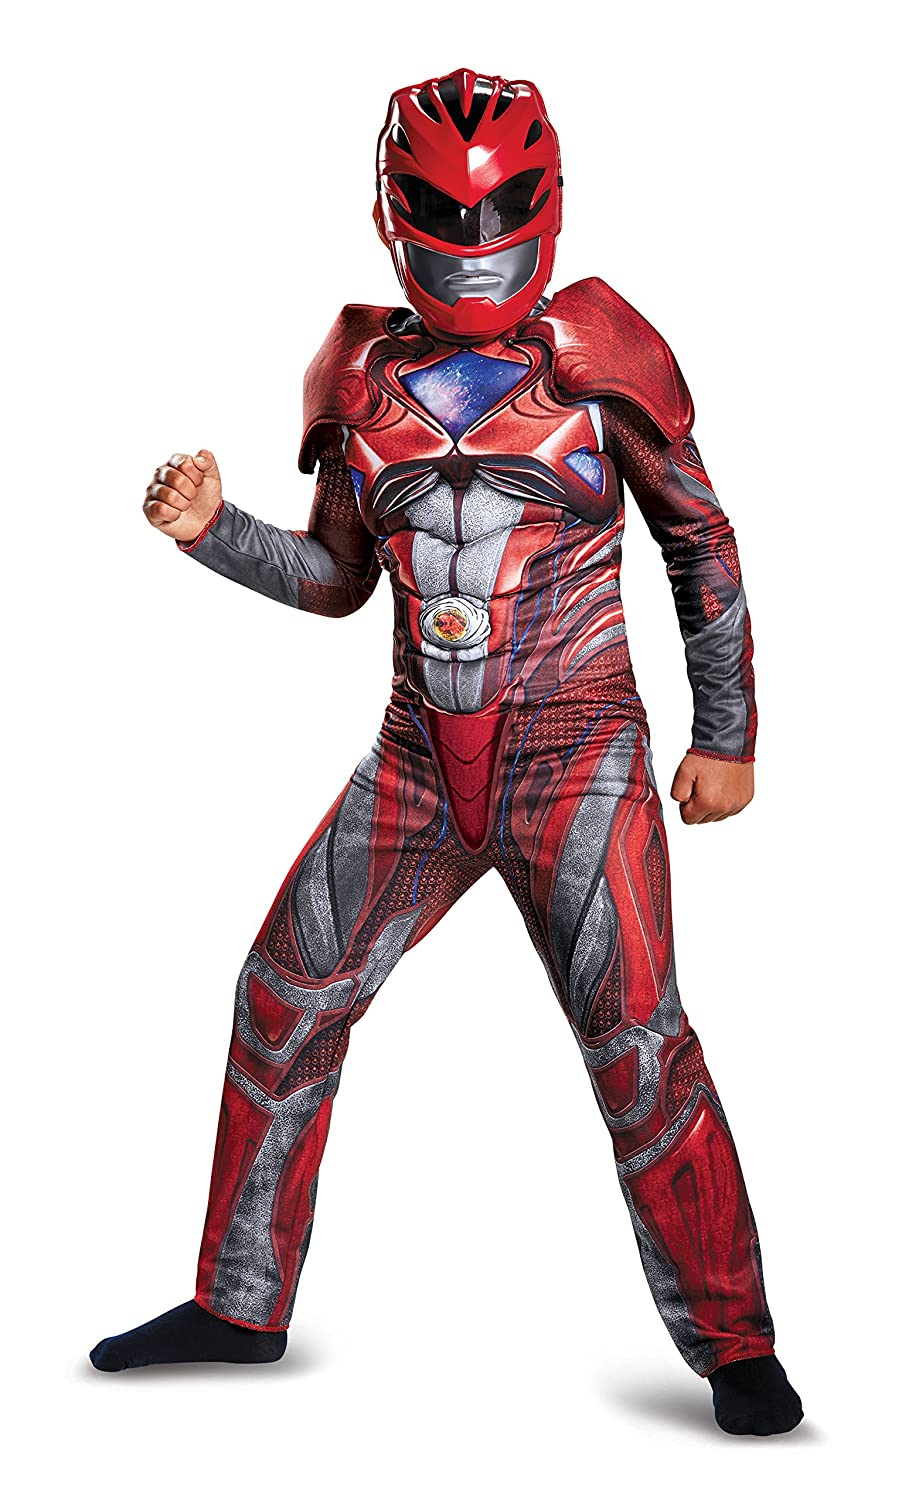 Black Large 10-12 Disguise Costumes Toys Division 19097G Disguise Power Ranger Movie Classic Muscle Costume